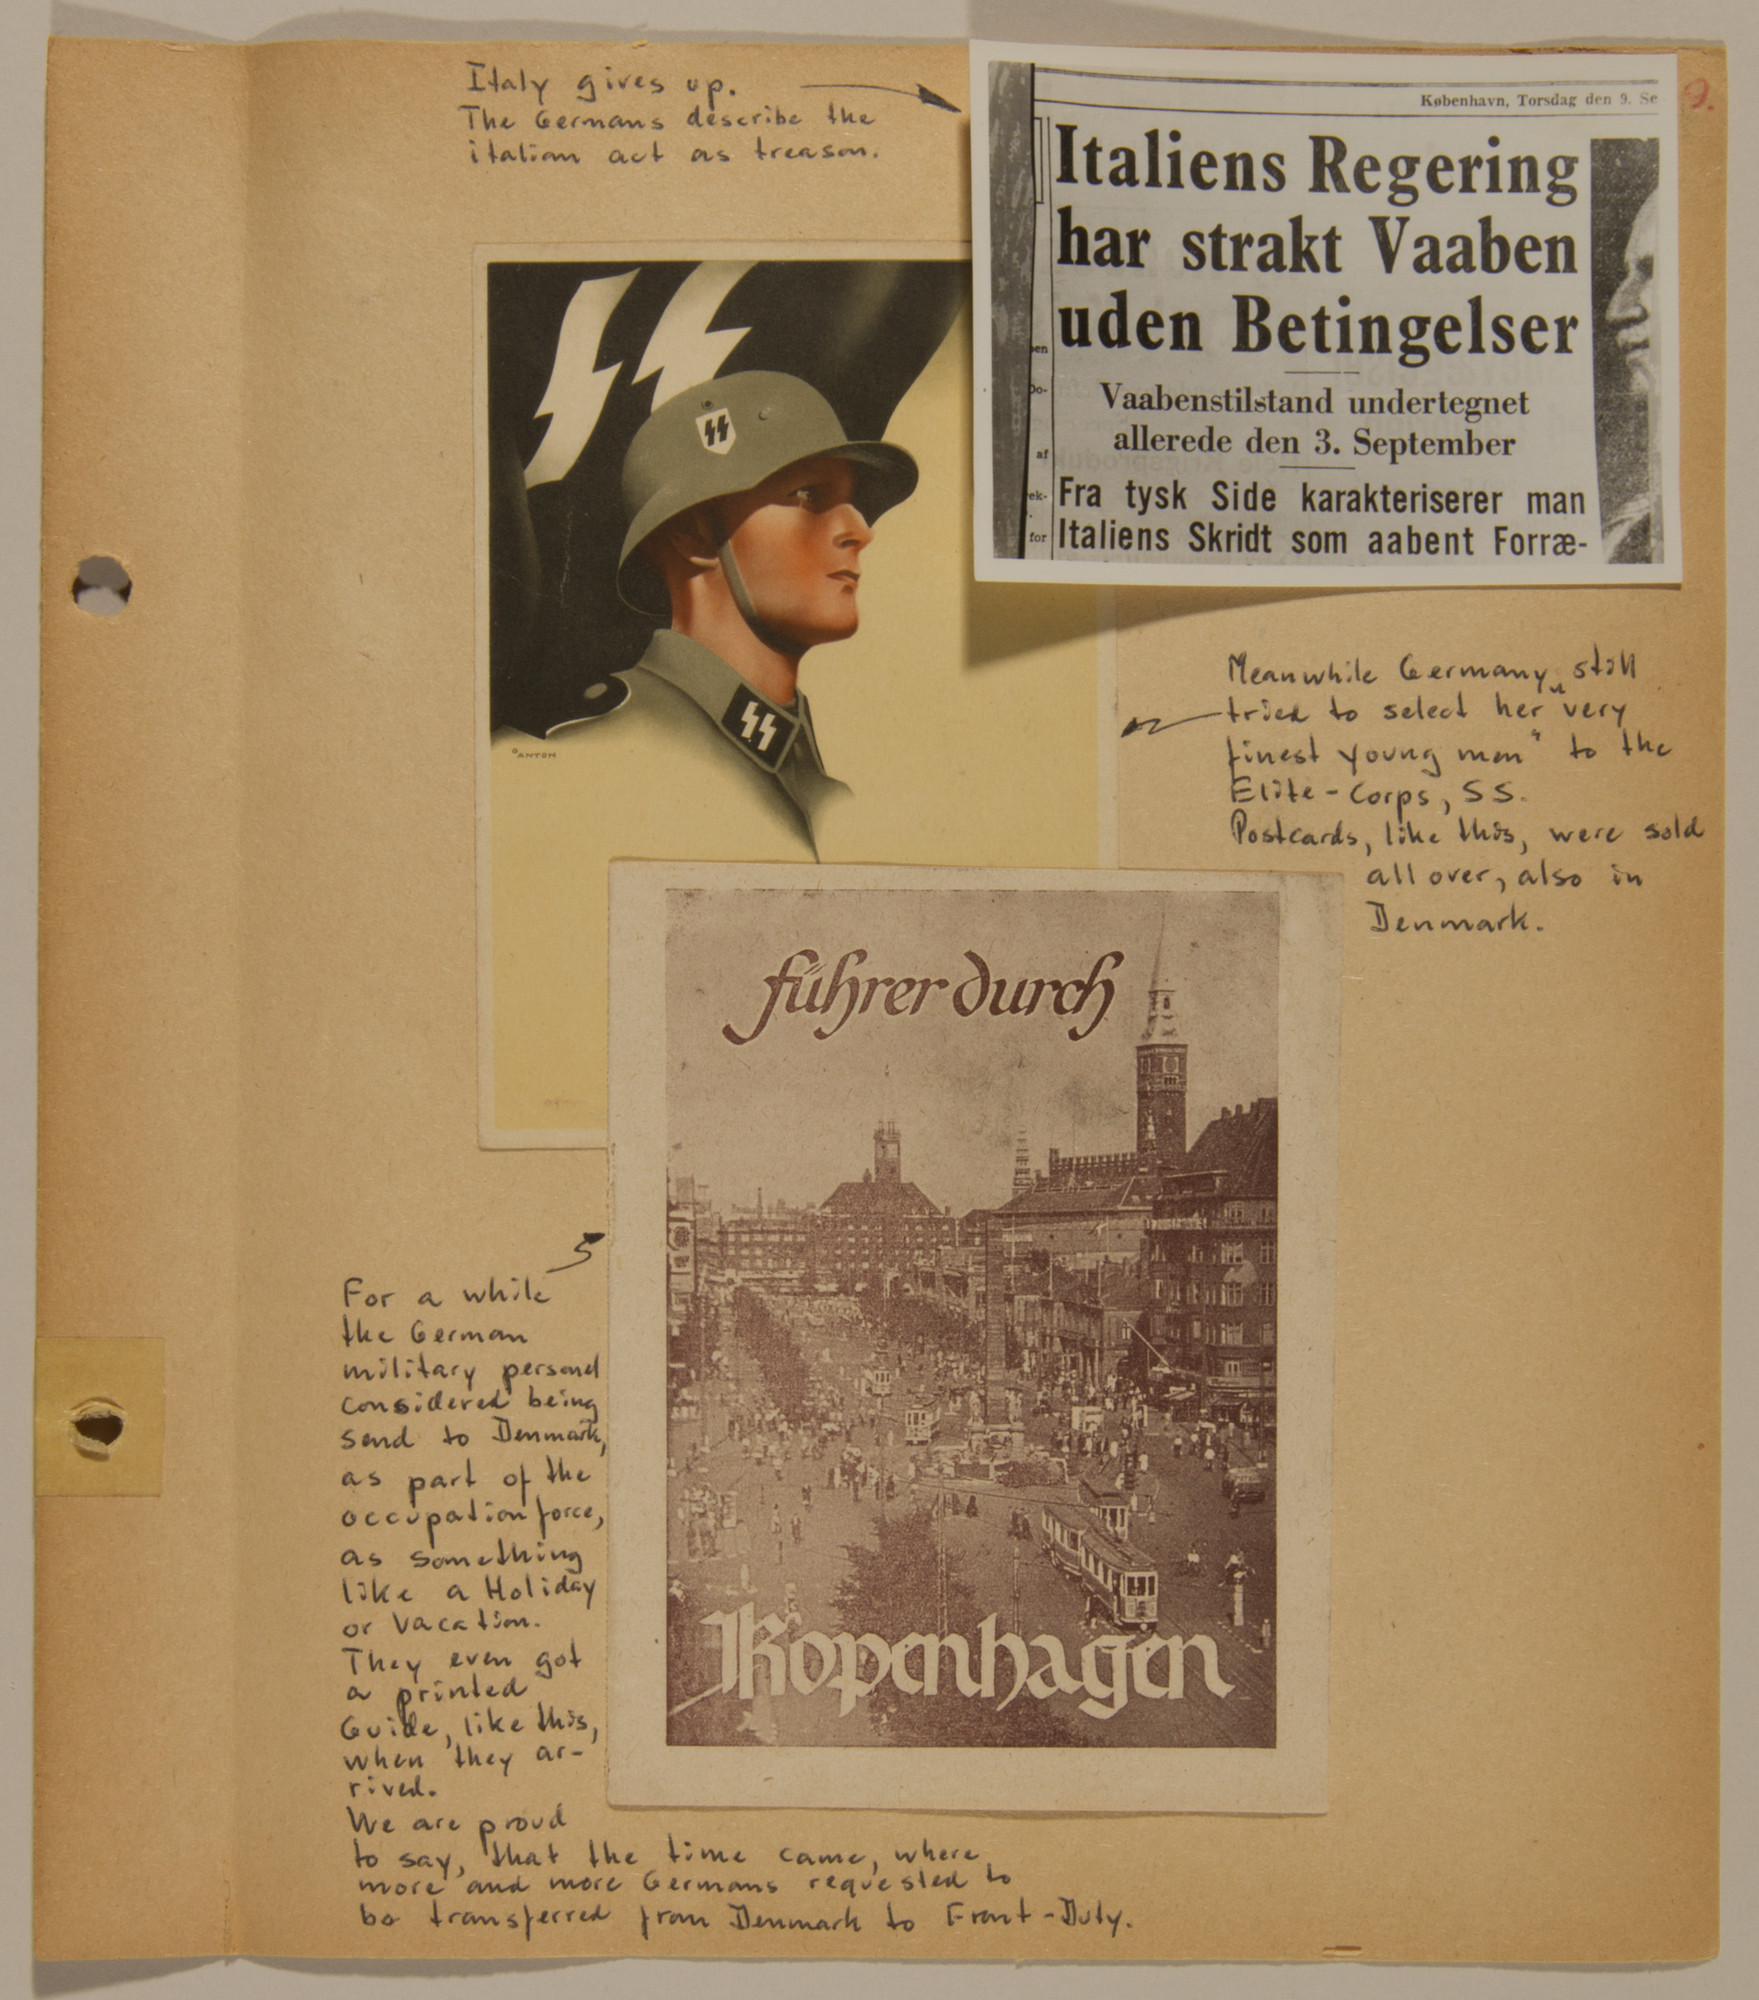 Page from volume five of a set of scrapbooks compiled by Bjorn Sibbern, a Danish policeman and resistance member, documenting the German occupation of Denmark.  This page contains Nazi postcards and a newspaper clipping denouncing Italy's surrender.